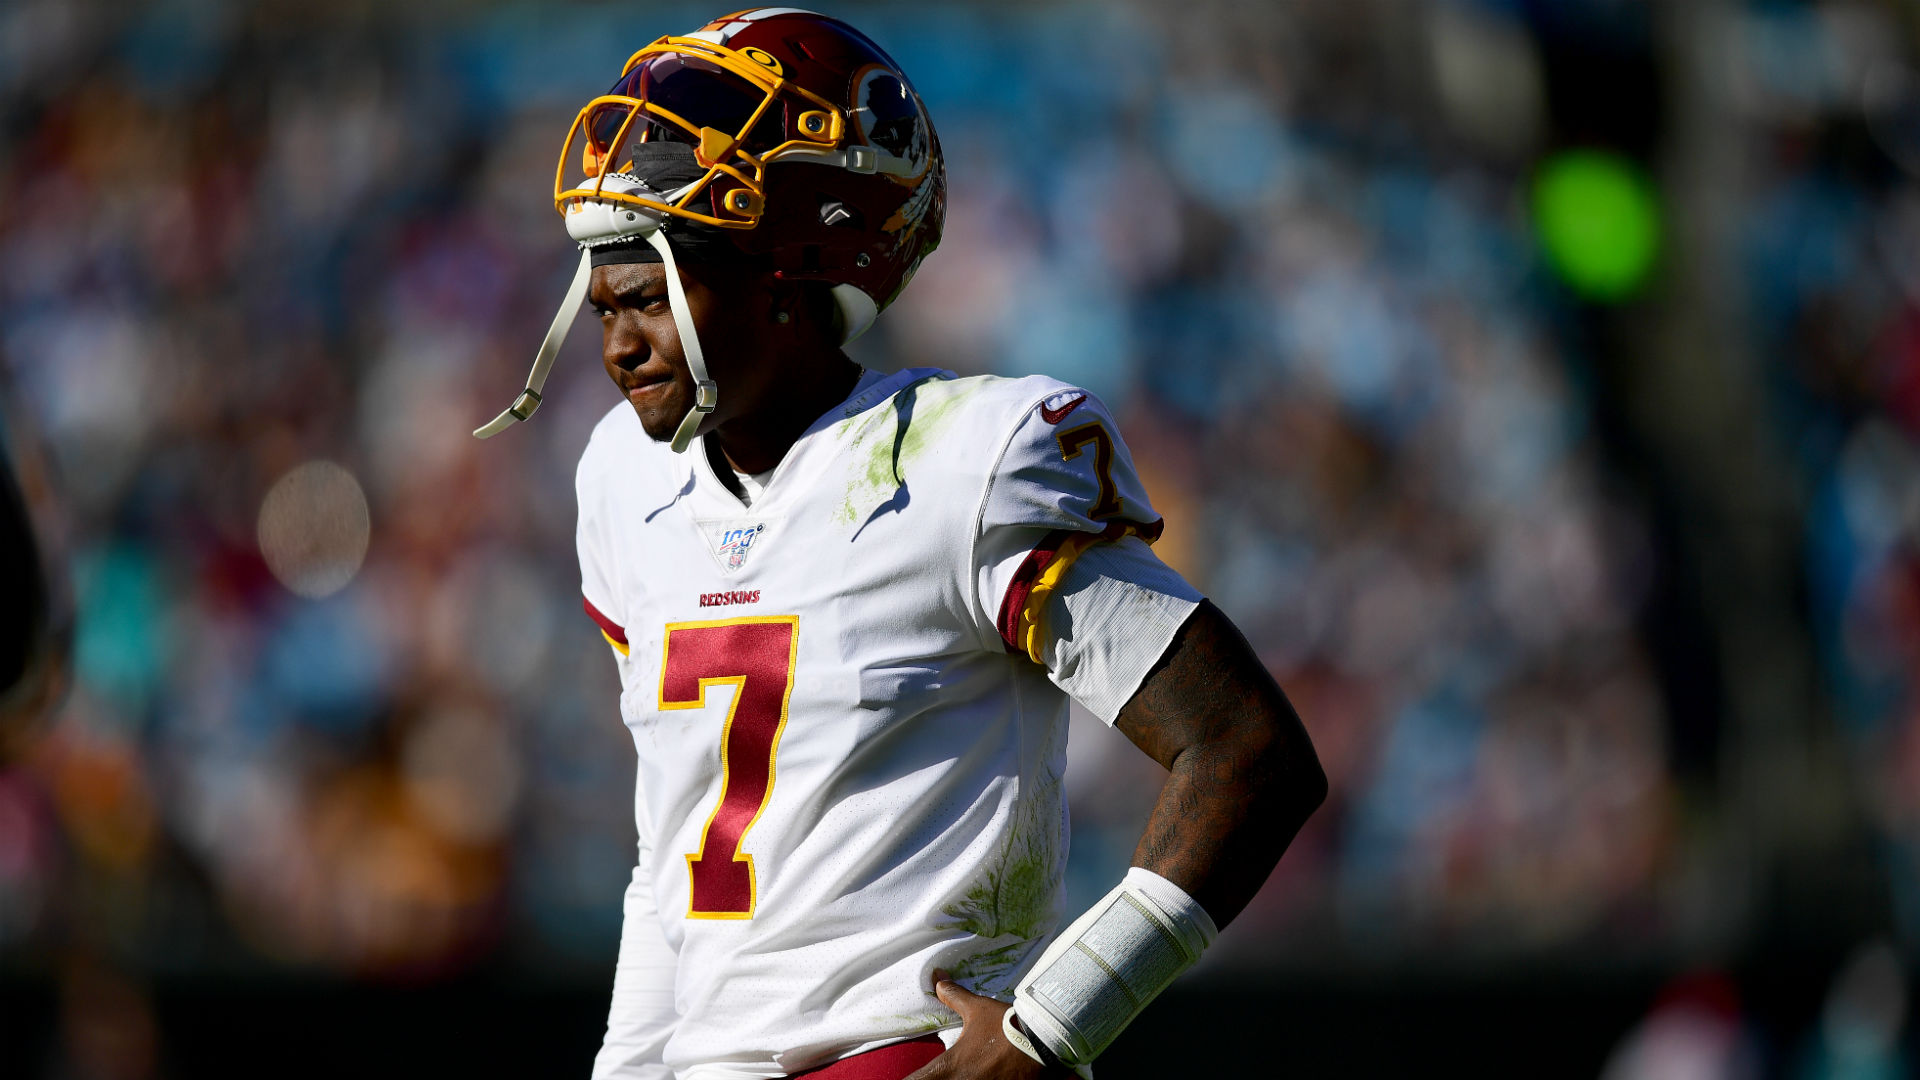 What's next for Dwayne Haskins as Washington benches QB after 11 starts?